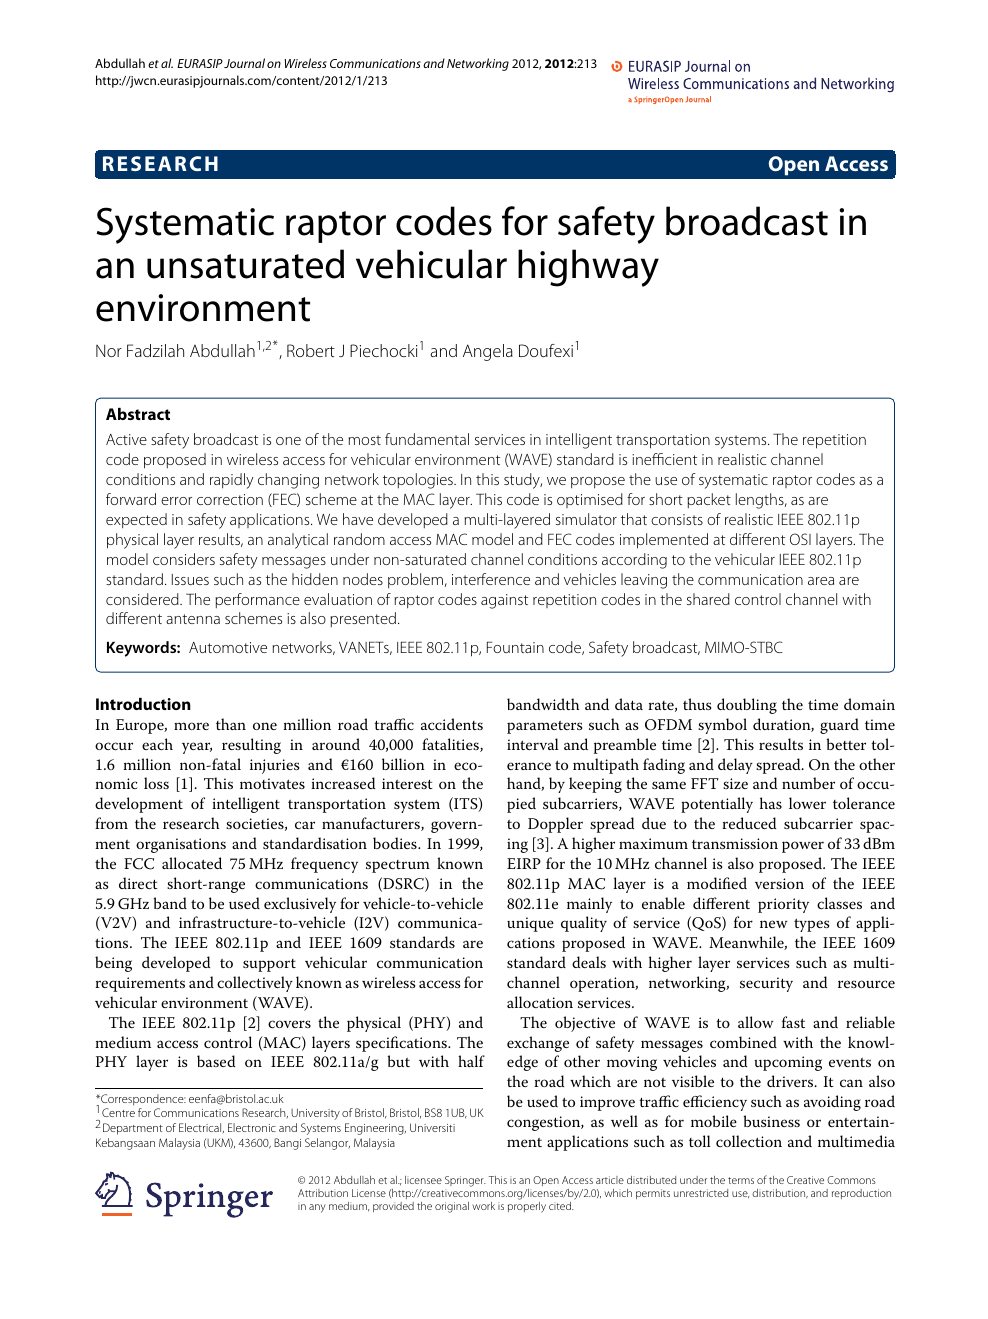 Systematic raptor codes for safety broadcast in an unsaturated